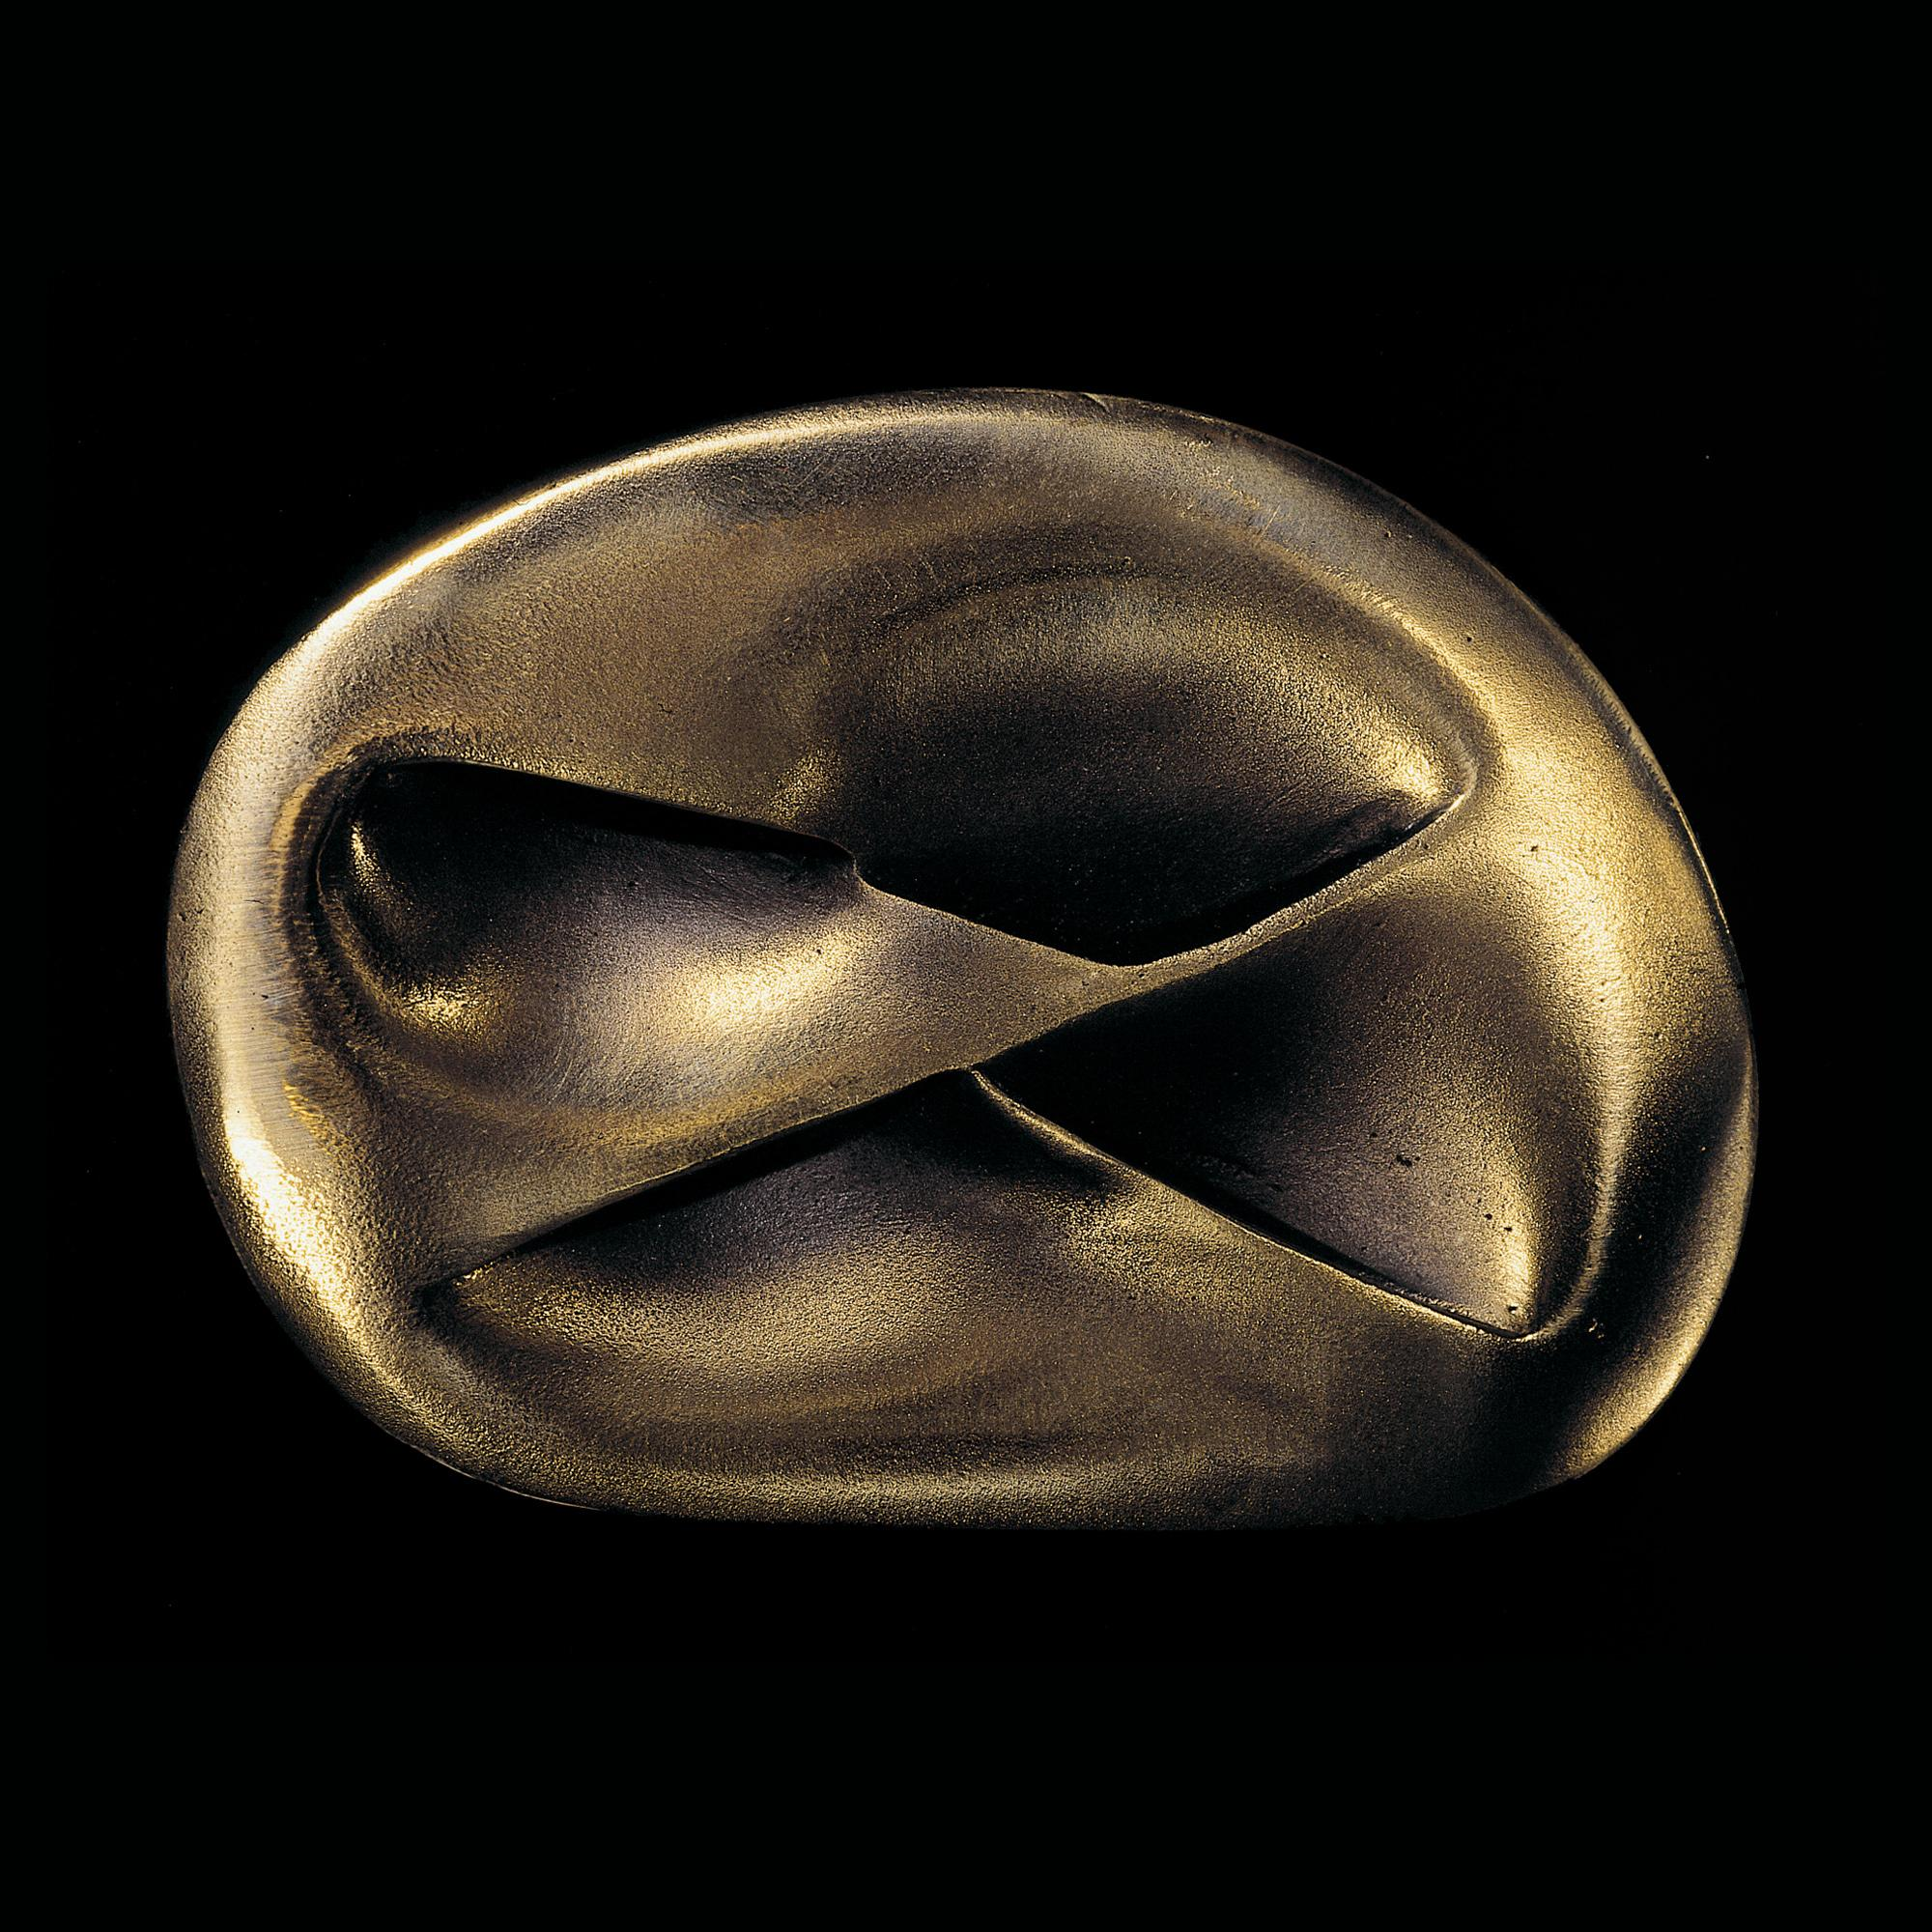 Unterirdische Schleife, Surrealist Sculpture, 20th Century Modern Art